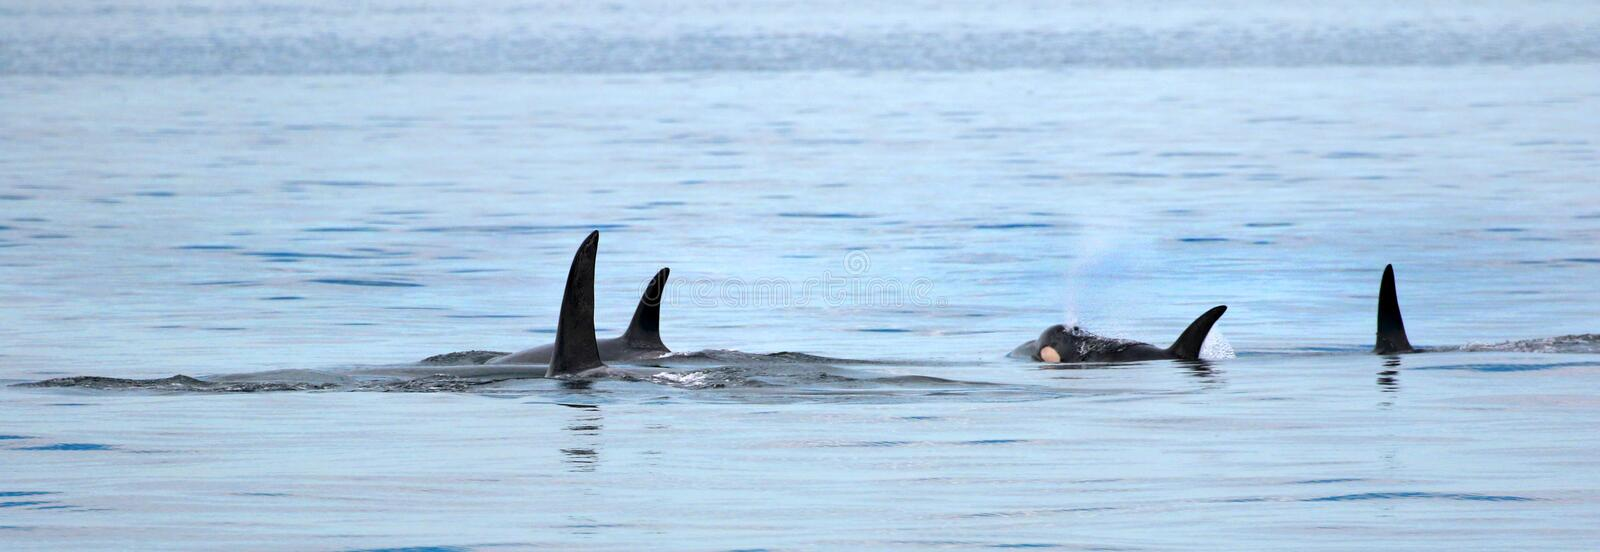 Pod of Orca Killer whale swimming, Victoria, Canada. Blue ocean royalty free stock photo